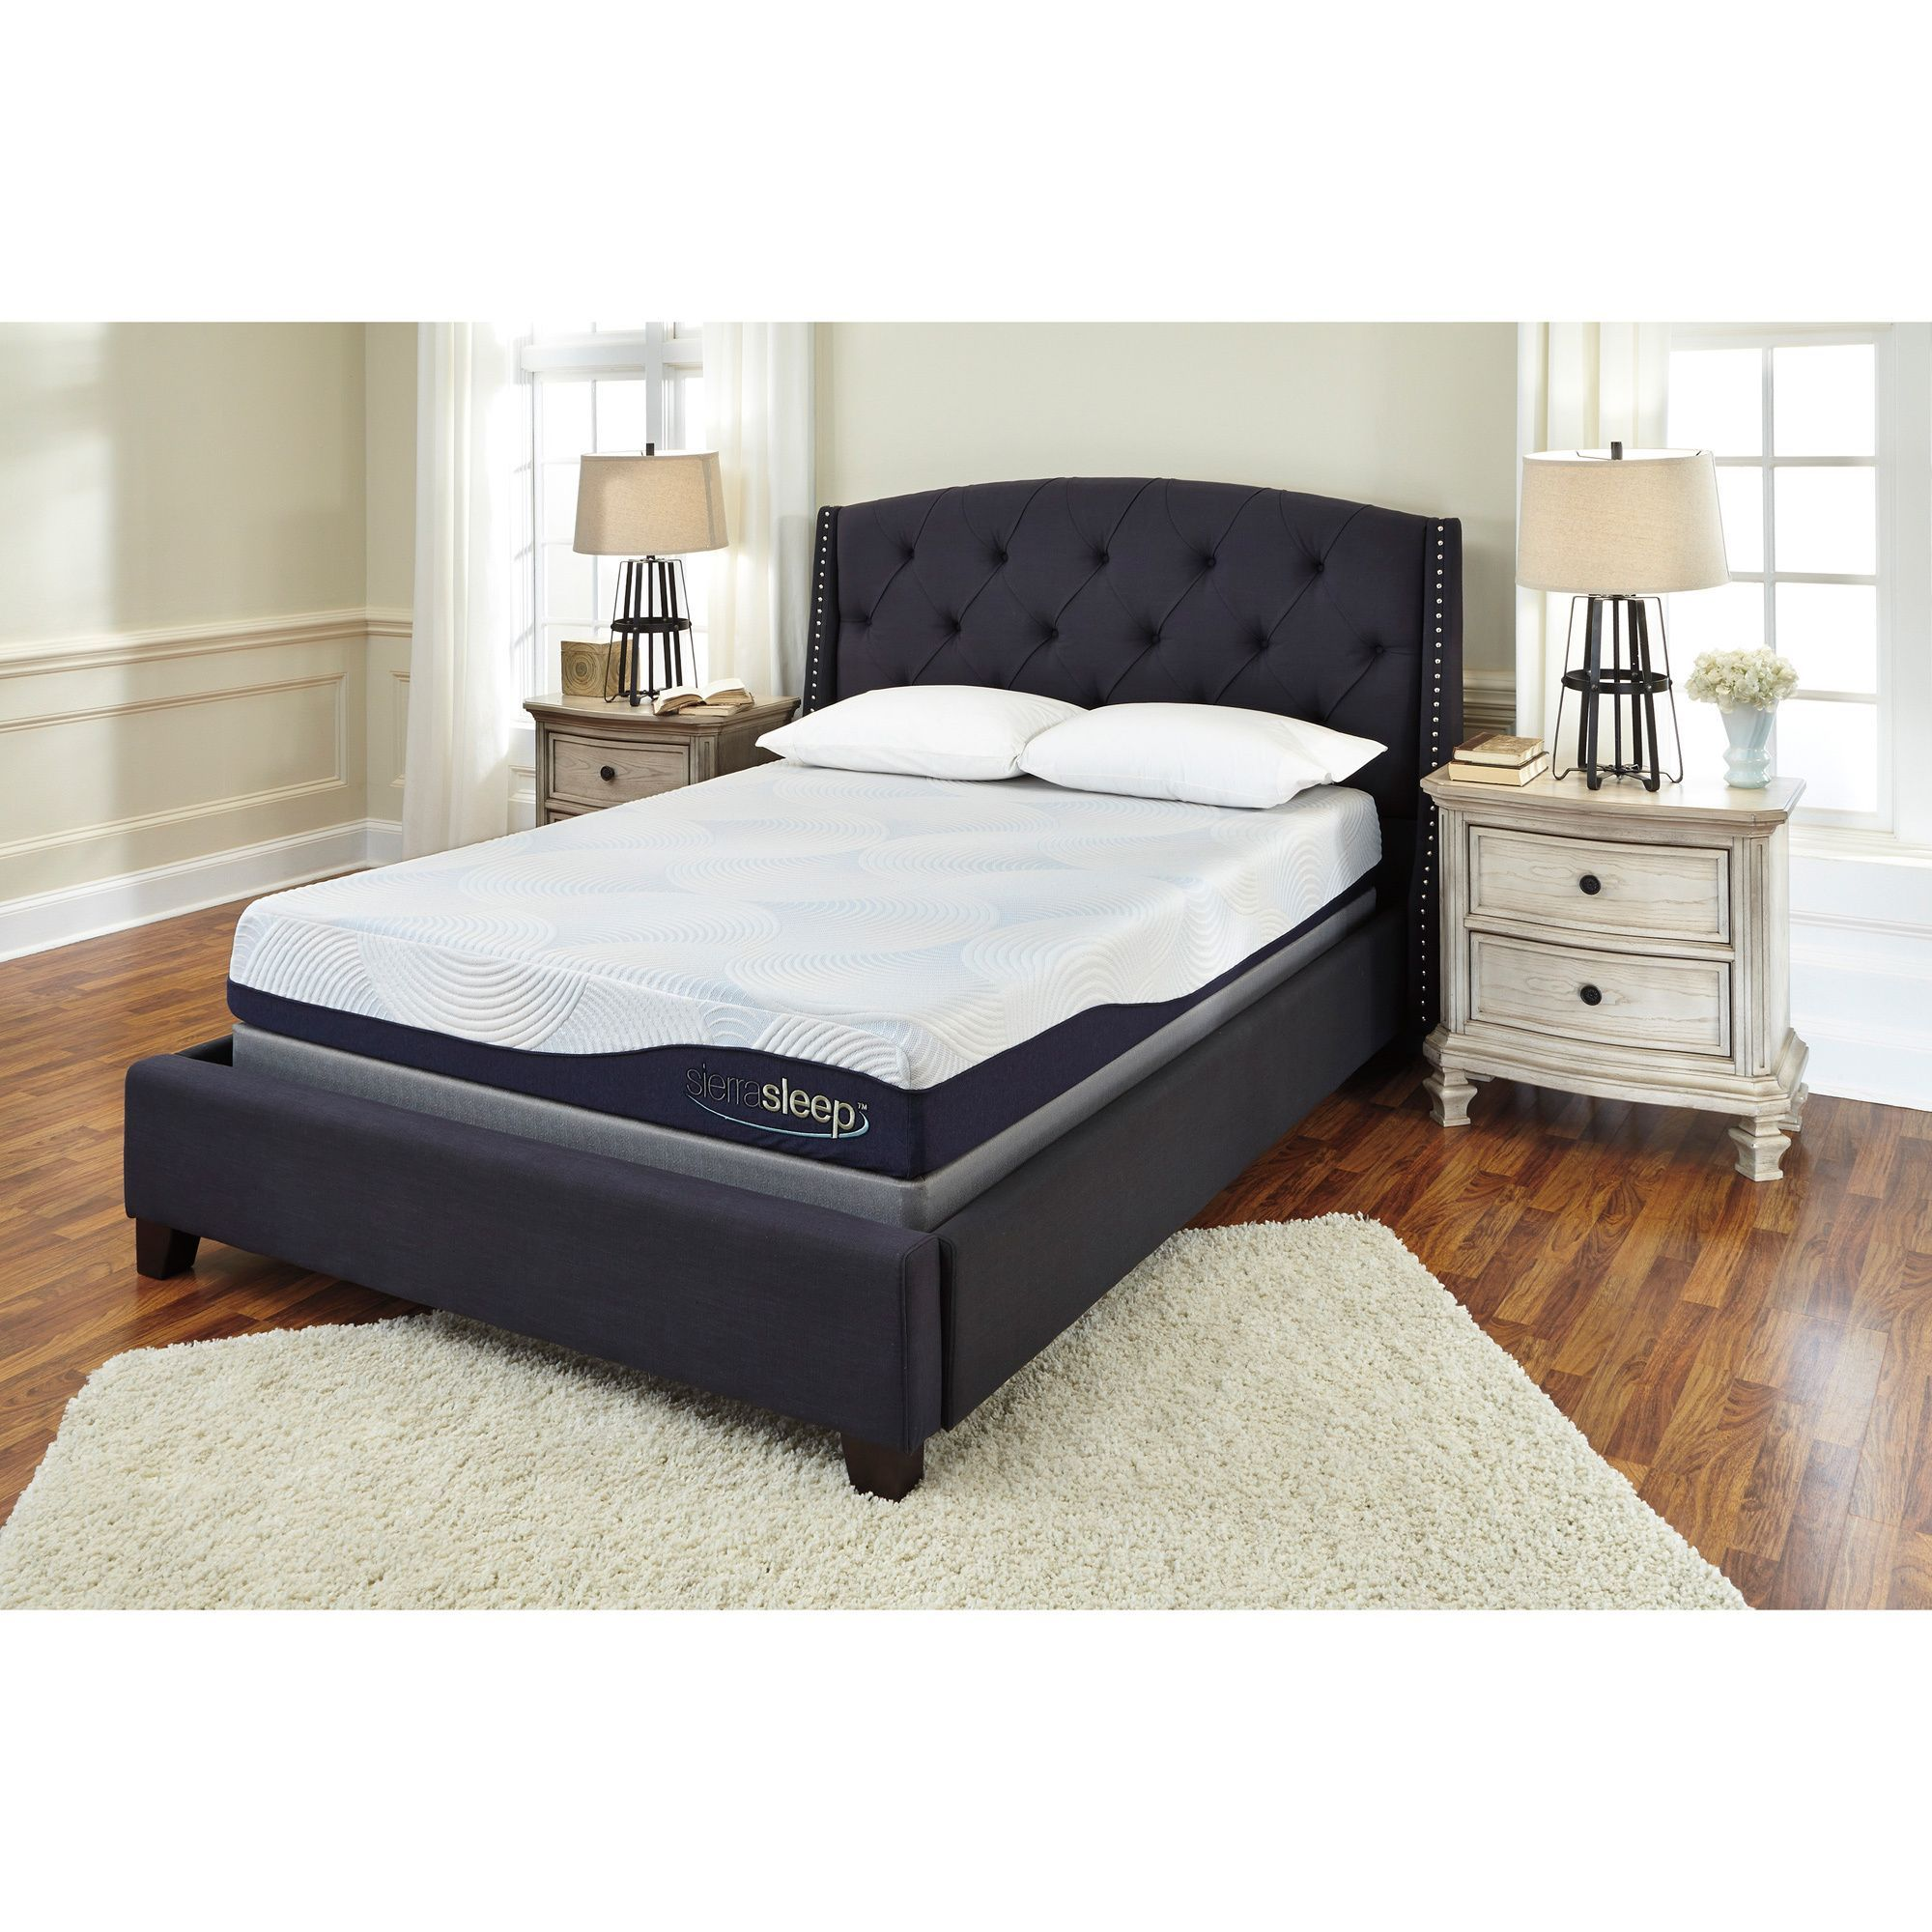 sierra sleep by ashley 9 inch queen size gel memory foam mattress